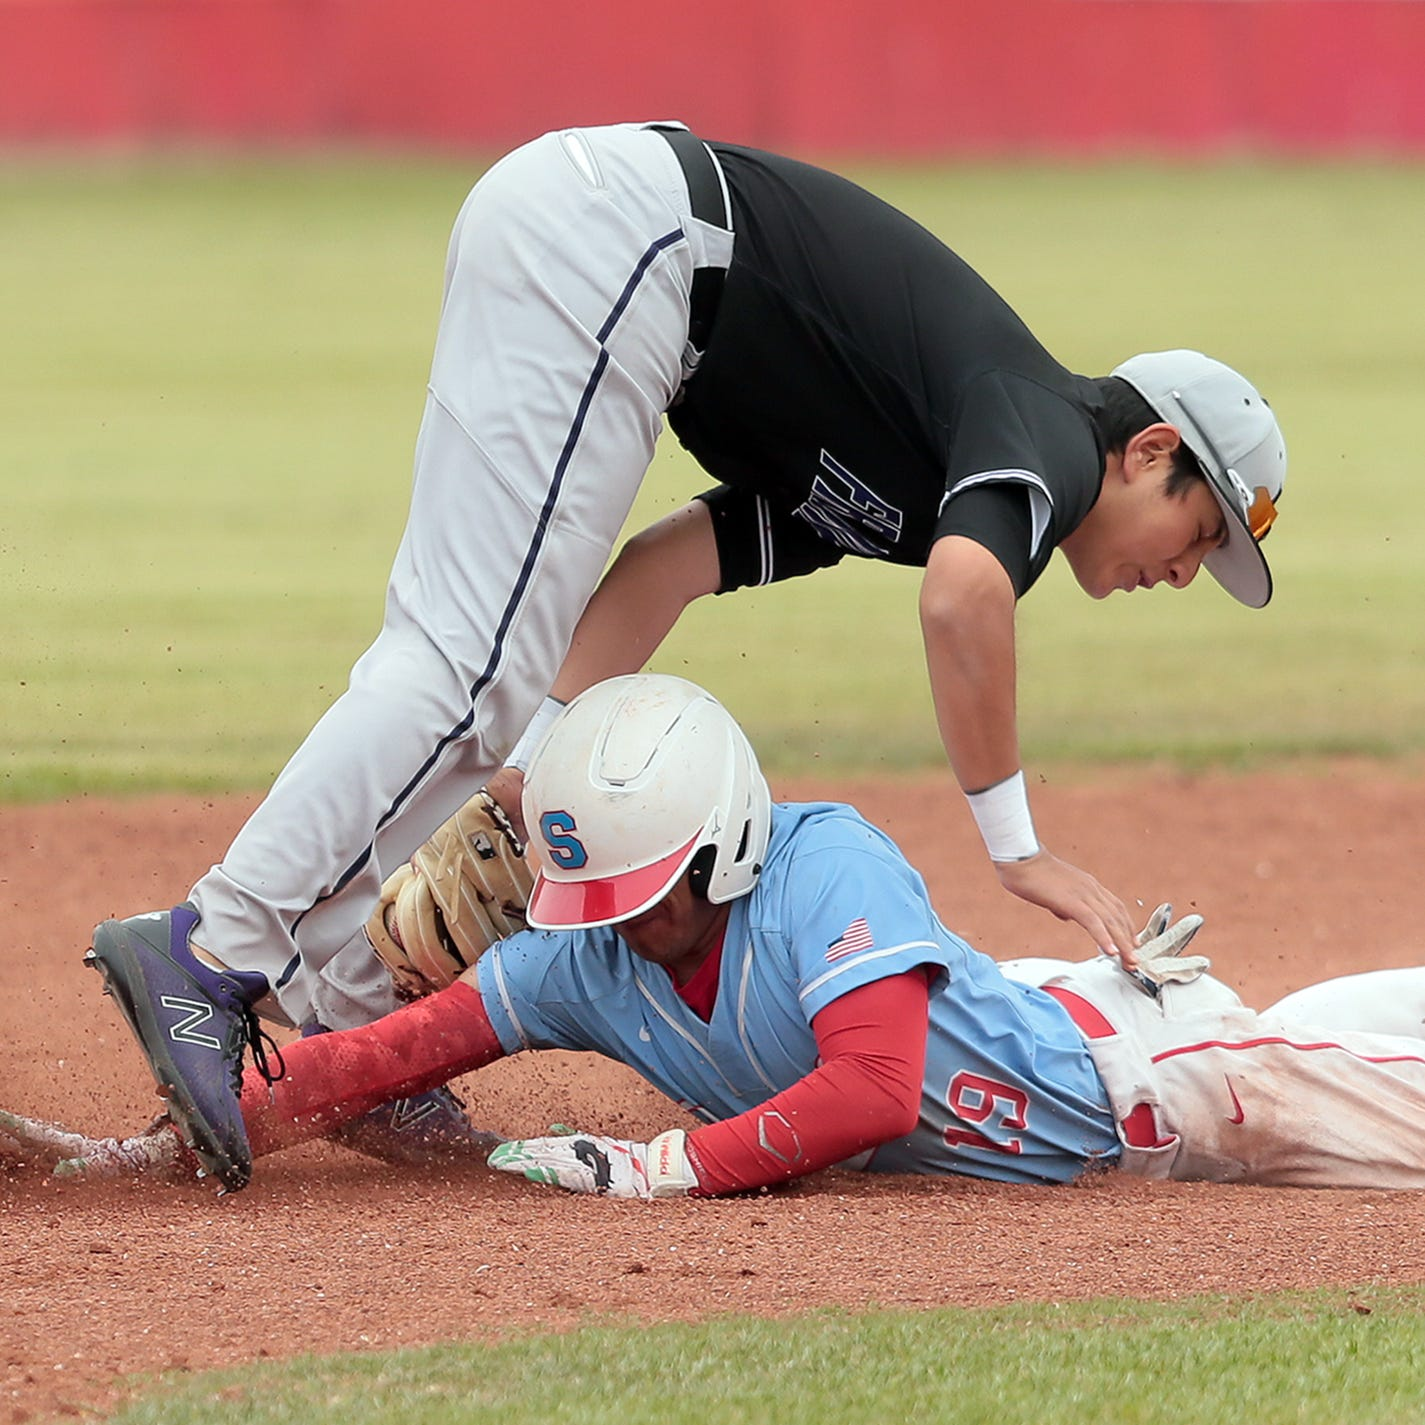 Socorro's Gerardo Contreras collides with Franklin second baseman Eddie Rodriguez as he slides into second during their game Friday afternoon at Socorro High School.